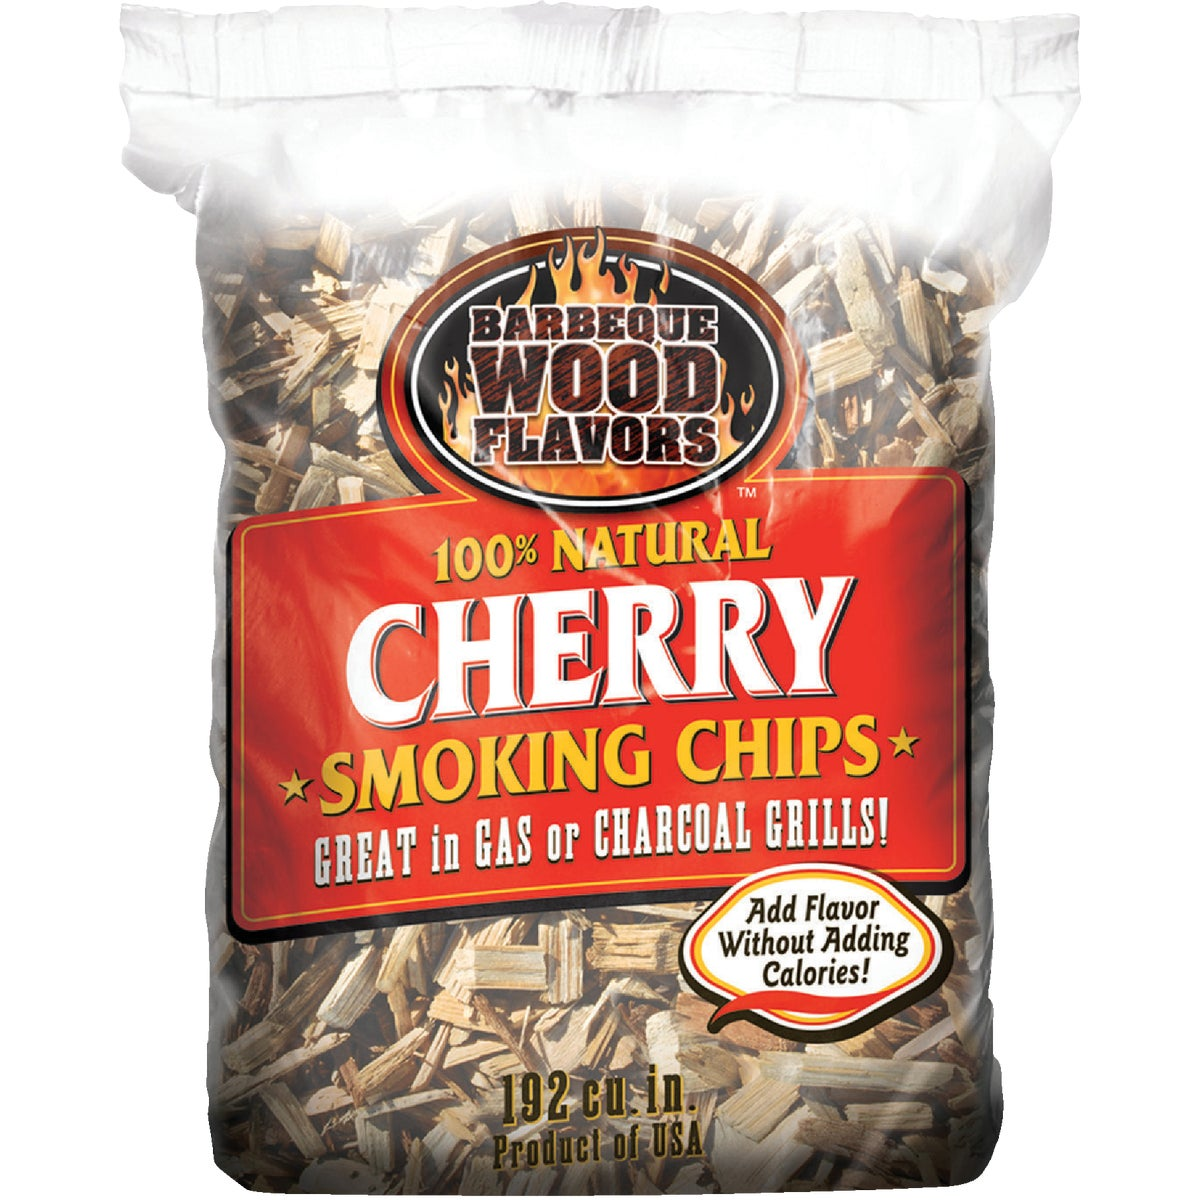 2.25LB CHERRY WOOD CHIPS - 60009 by Barbeque Wood Flavor